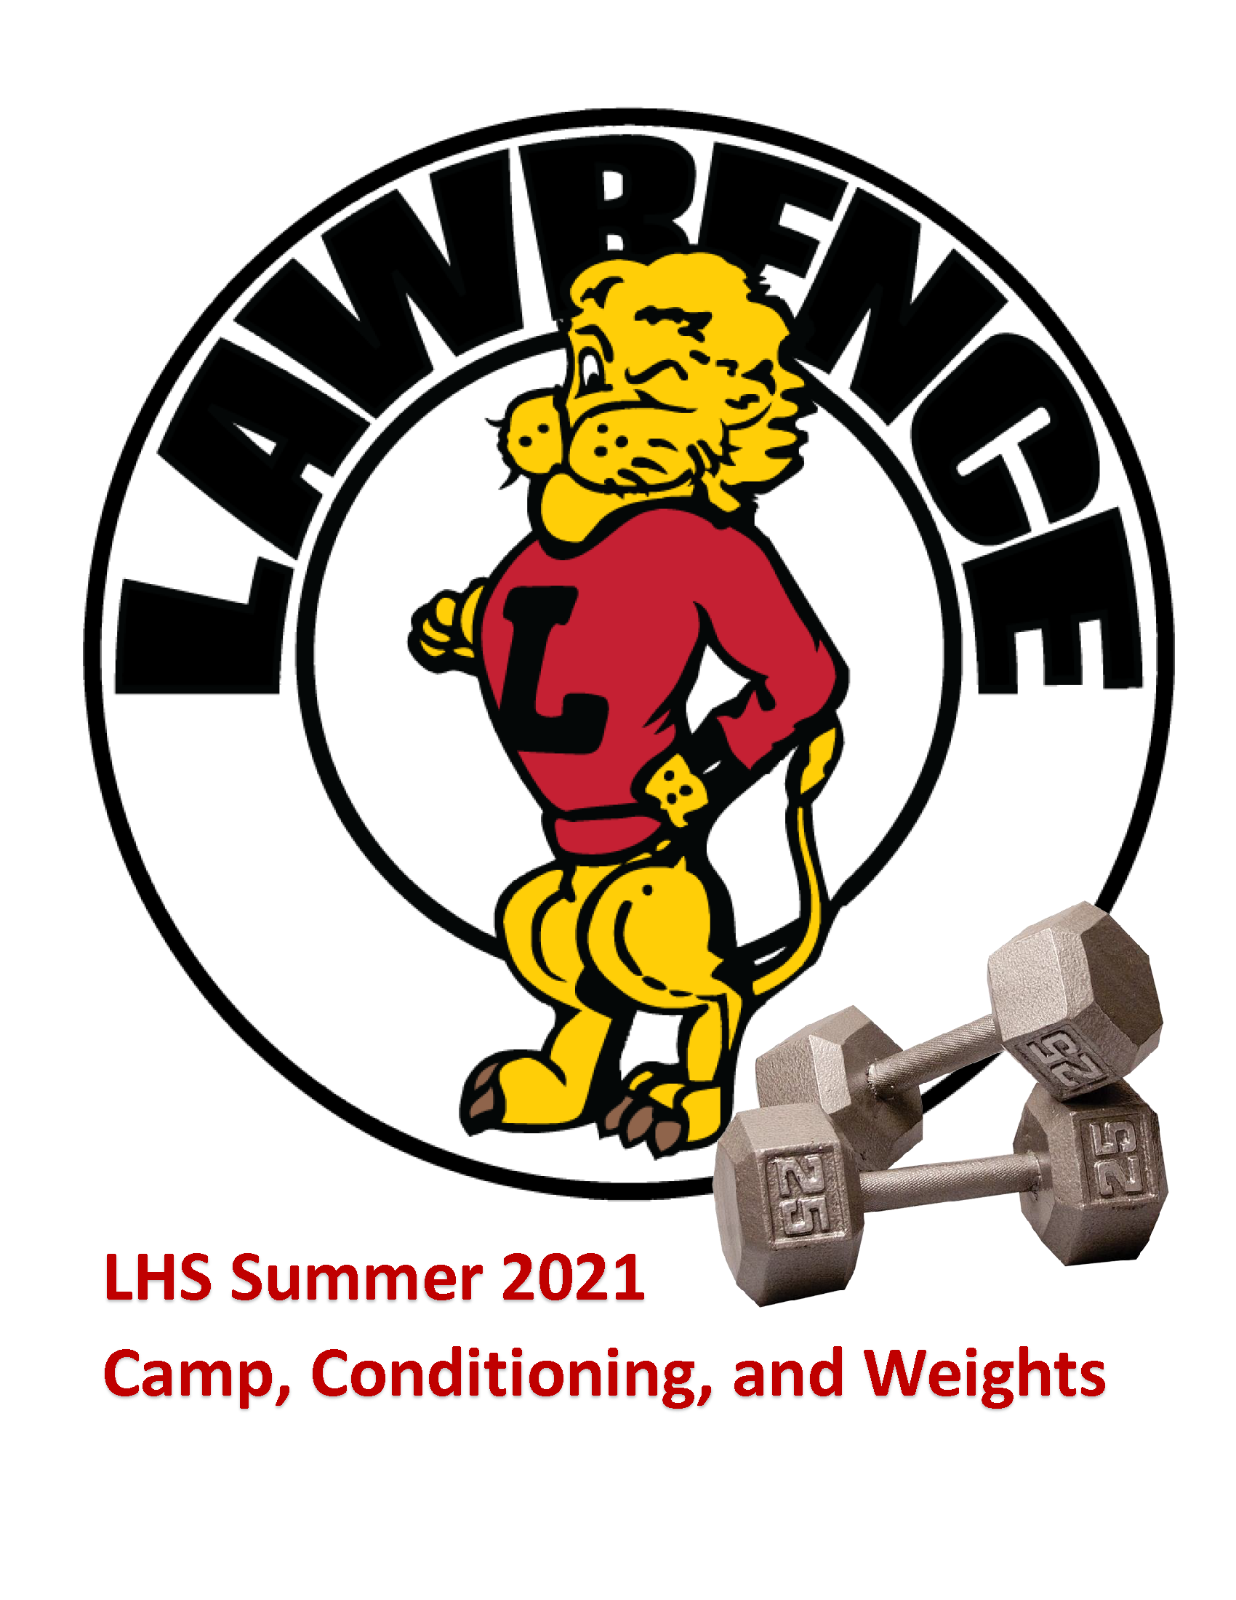 LHS Summer Camp, Conditioning, and Weights Info